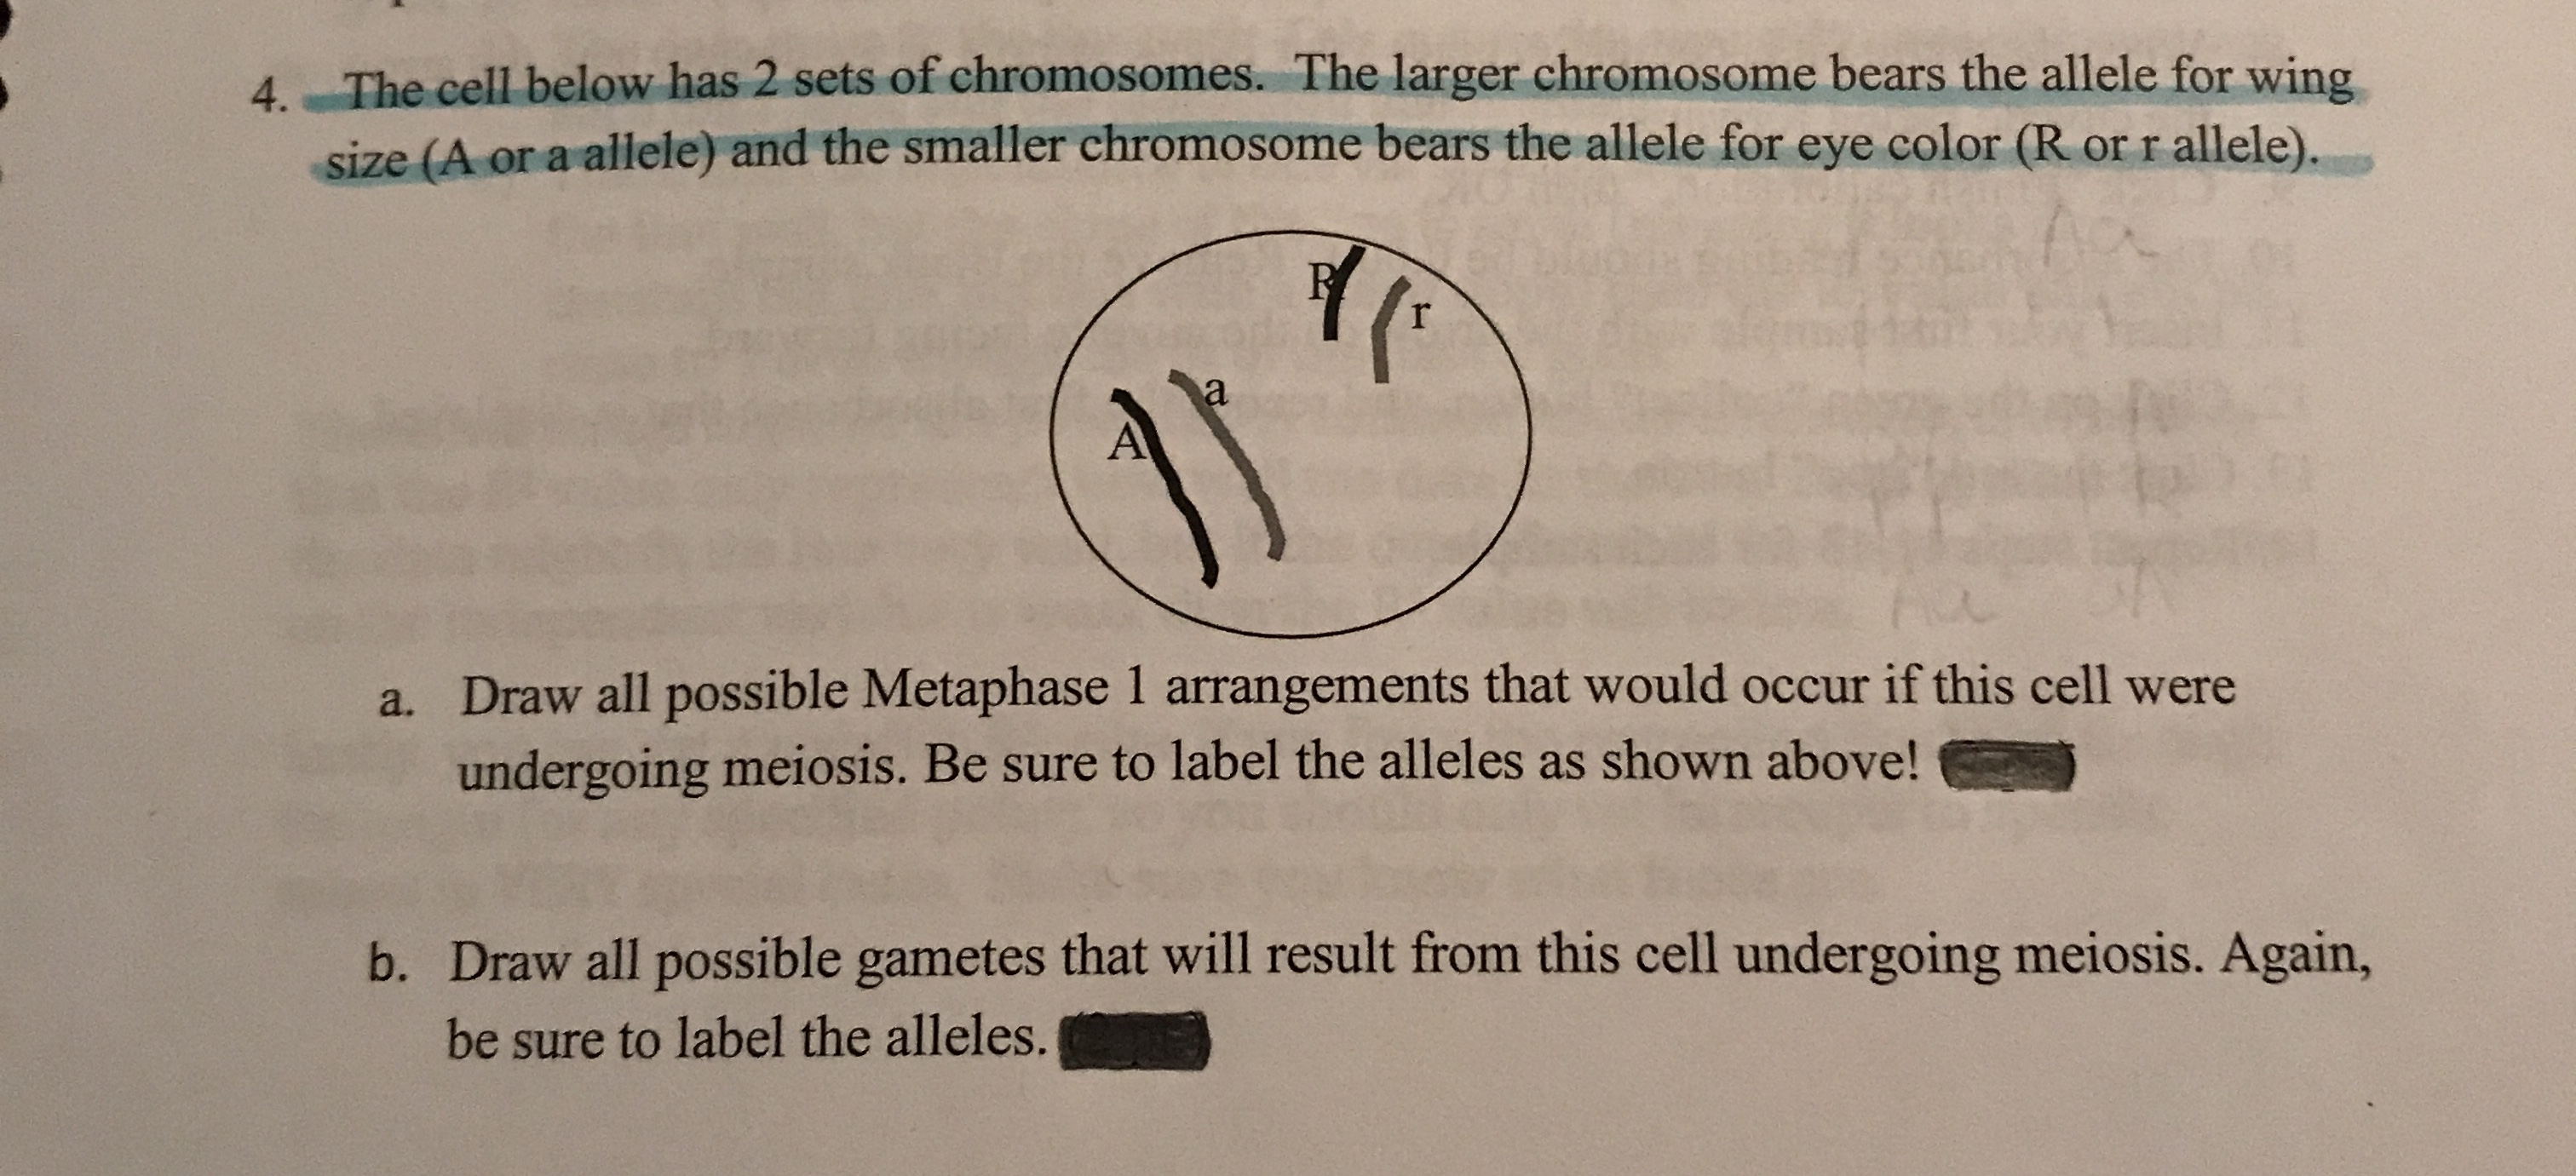 4. The cell below has 2 sets of chromosomes. The larger chromosome bears the allele for wing size (A or a allele) and the smaller chromosome bears the allele for eye color (R or r allele). a a. Draw all possible Metaphase 1 arrangements that would occur if this cell were undergoing meiosis. Be sure to label the alleles as shown above! b. Draw all possible gametes that will result from this cell undergoing meiosis. Again, be sure to label the alleles.